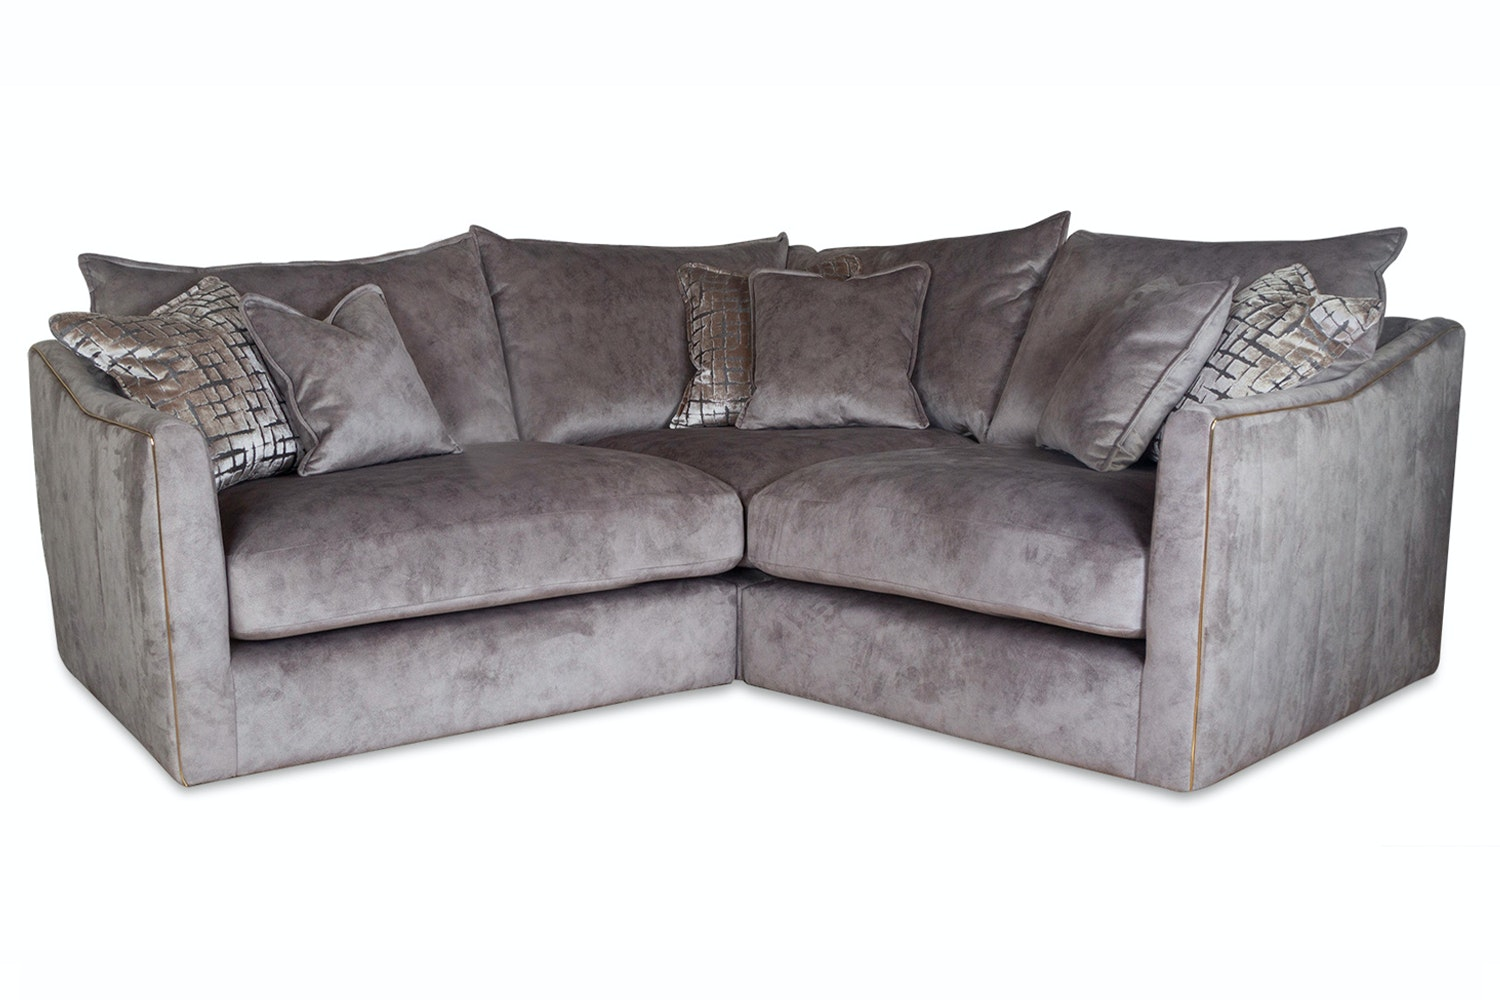 Zola Small Corner Sofa Ireland